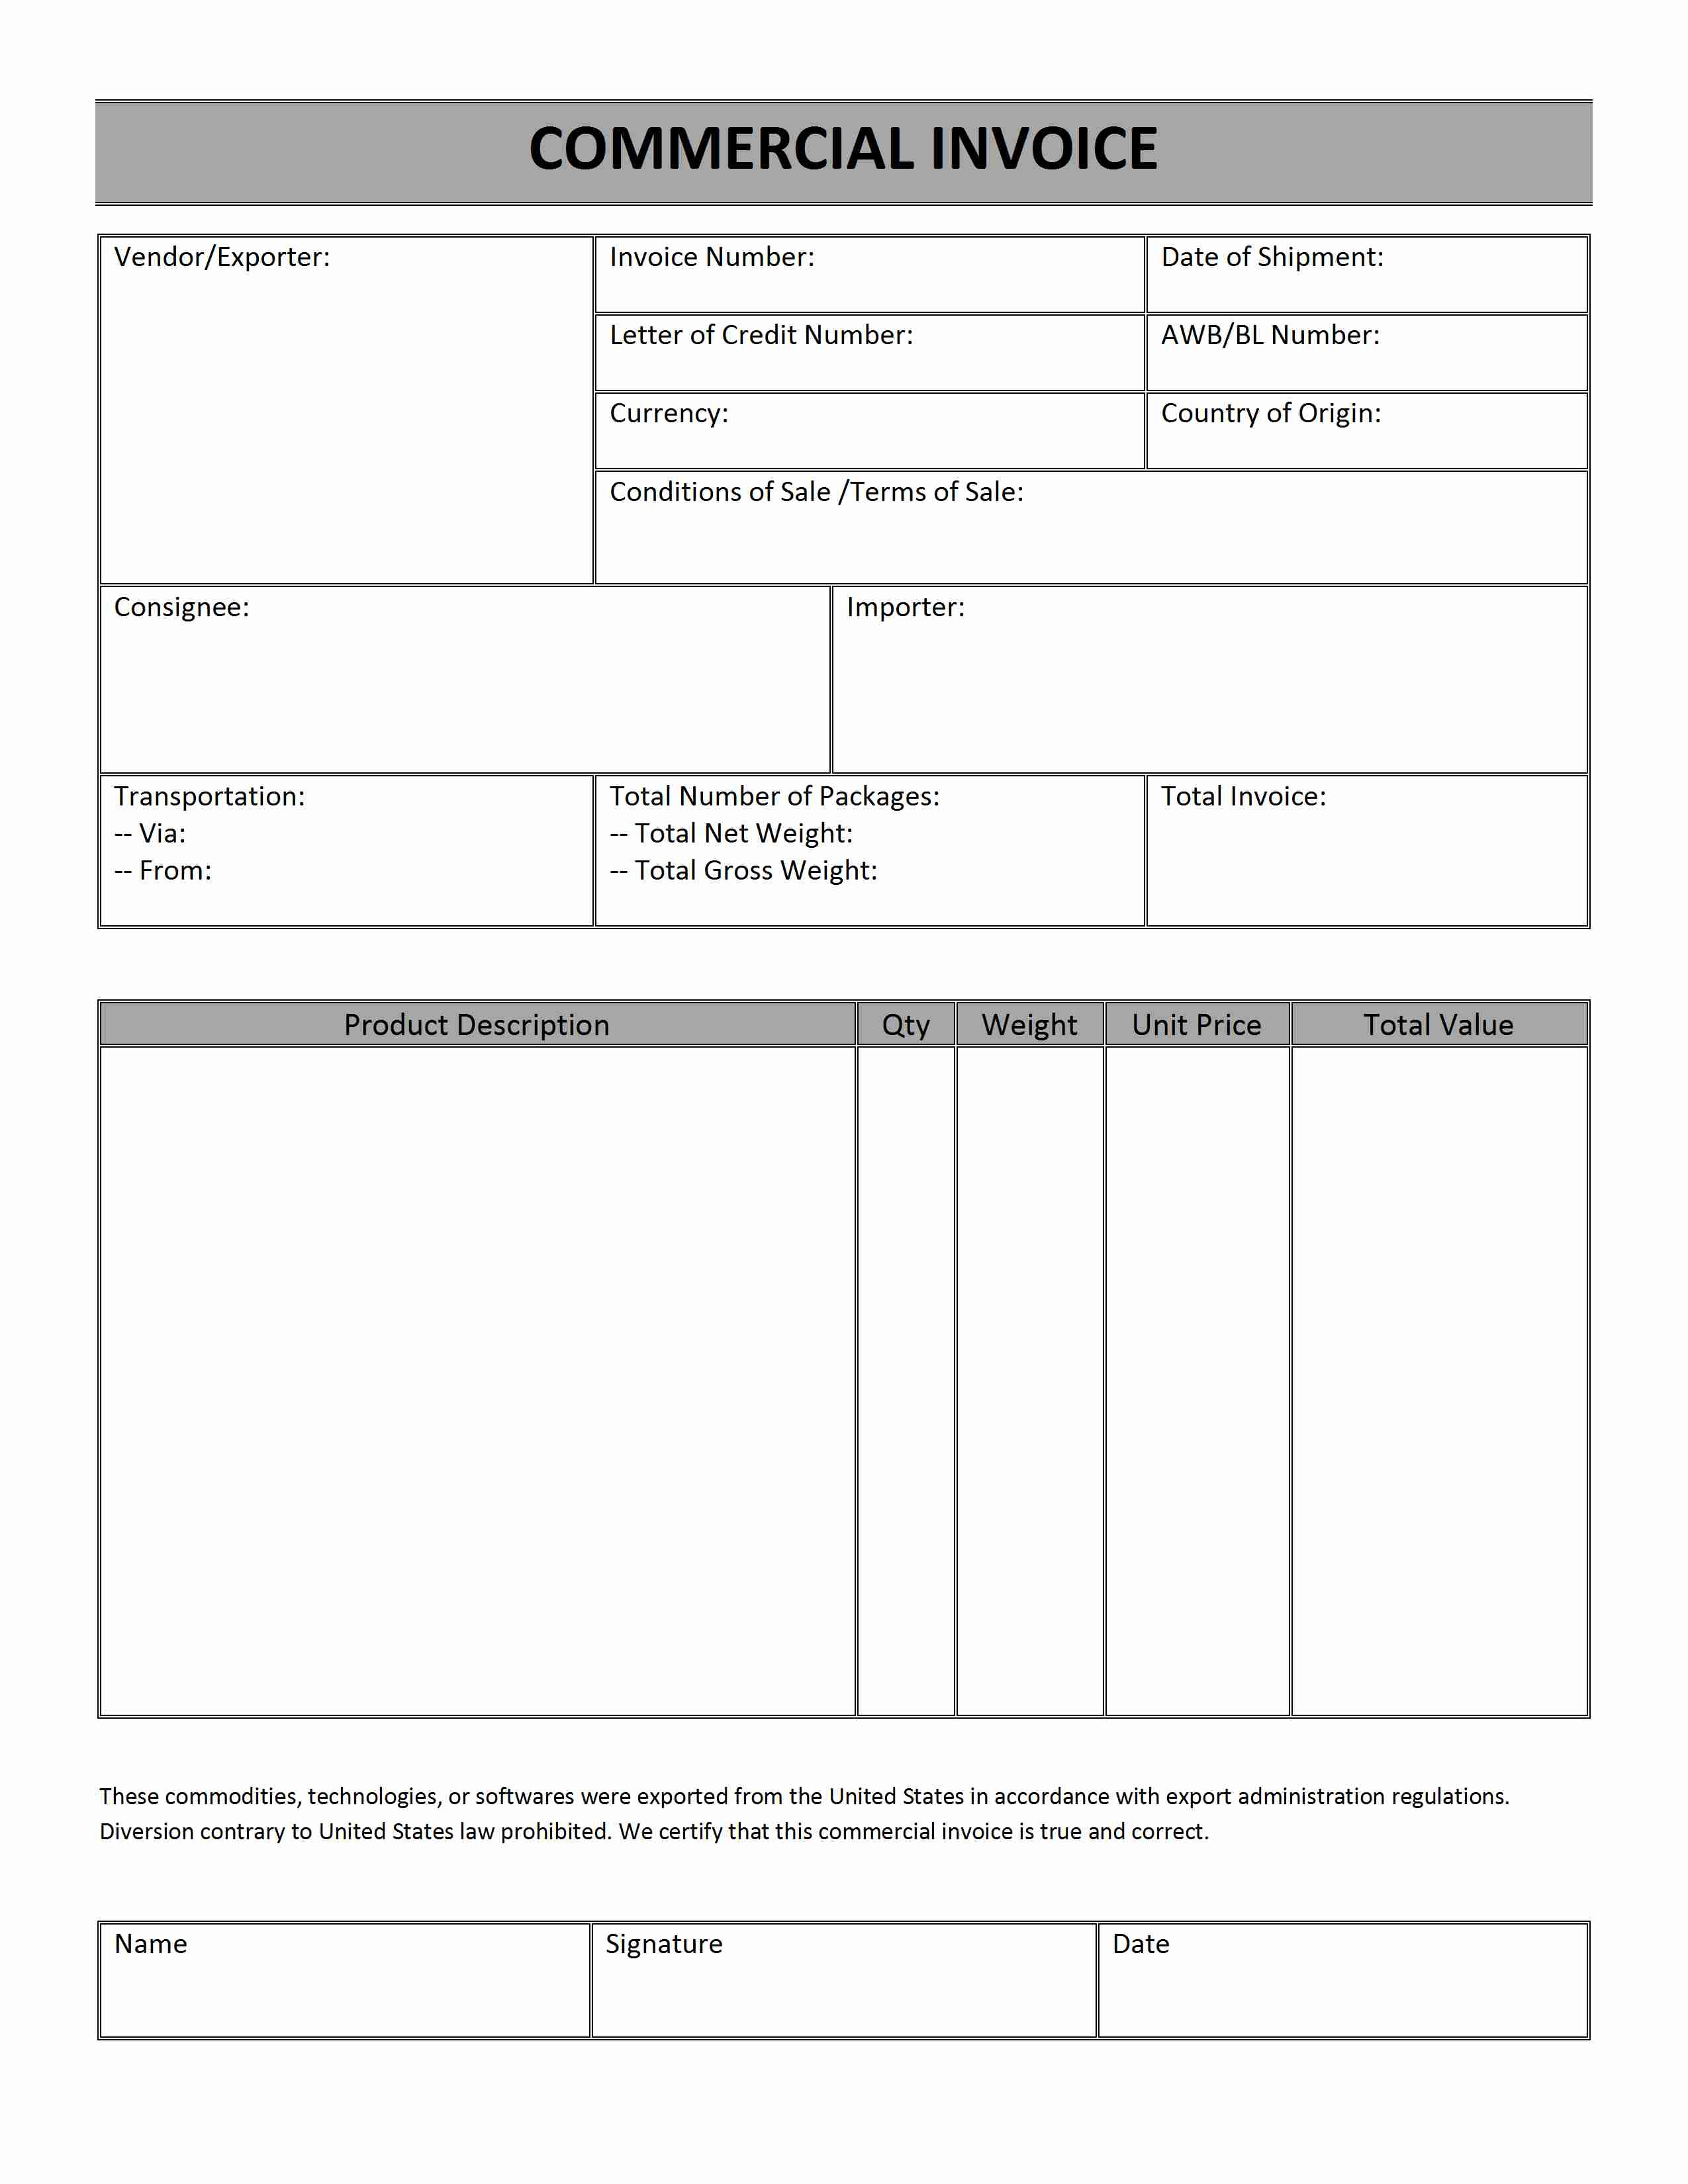 Coolmathgamesus  Unusual Printable Sales Invoice Simple Invoice Form Free Invoice  With Engaging Printable Receipt Free  Free Printable Raffle Tickets  Receipt   Printable With Awesome Invoice Price On New Cars Also Invoice Free Online In Addition Invoice Reminder And Invoice Log As Well As Online Invoicing And Payment Additionally Word Template For Invoice From Happytomco With Coolmathgamesus  Engaging Printable Sales Invoice Simple Invoice Form Free Invoice  With Awesome Printable Receipt Free  Free Printable Raffle Tickets  Receipt   Printable And Unusual Invoice Price On New Cars Also Invoice Free Online In Addition Invoice Reminder From Happytomco